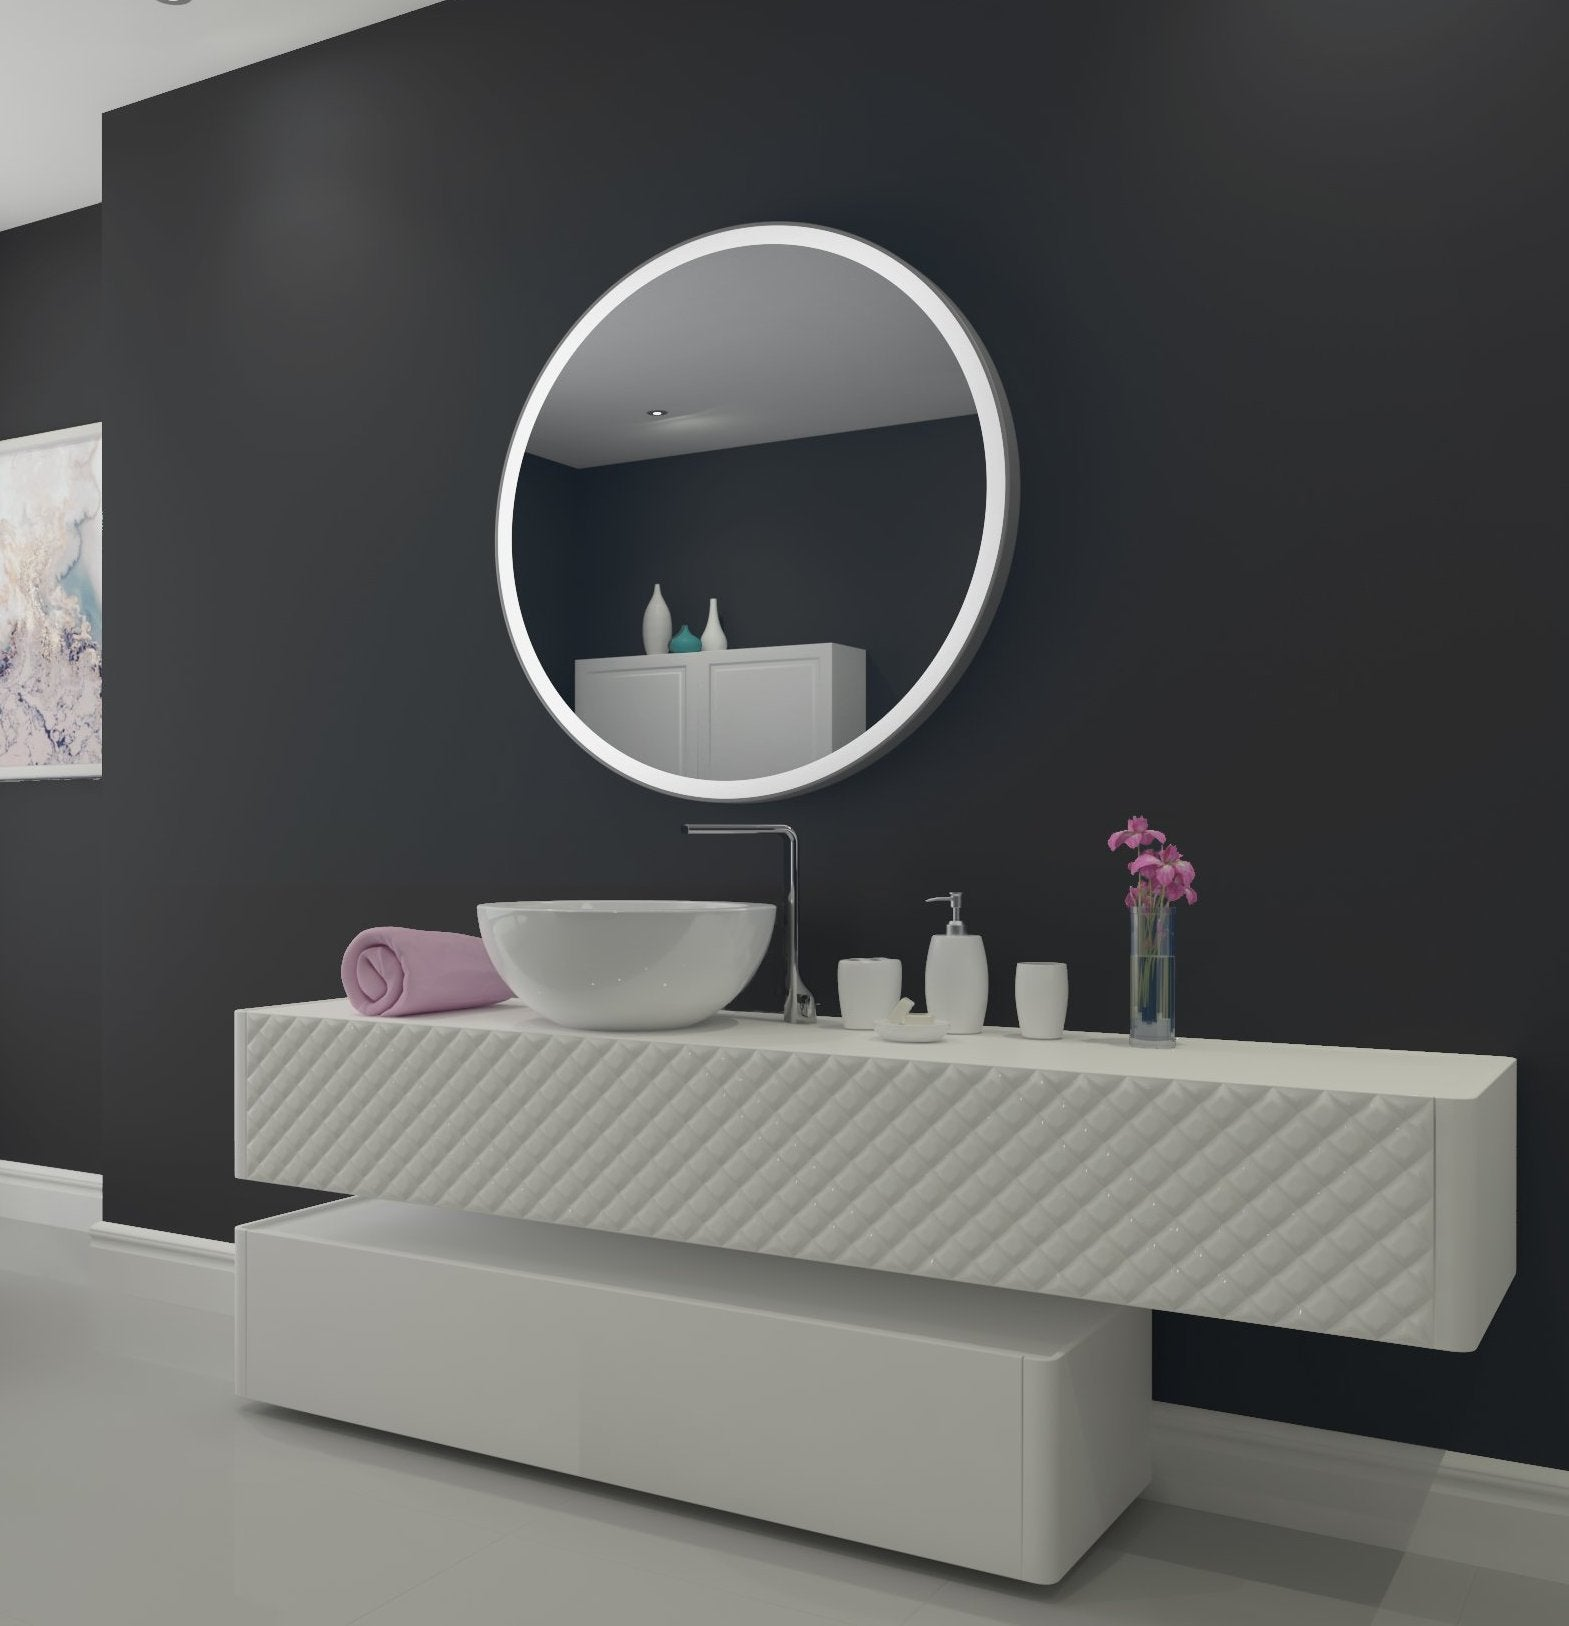 dimmable lighted bathroom mirror round galaxy 40 x 40 ib mirror. Black Bedroom Furniture Sets. Home Design Ideas